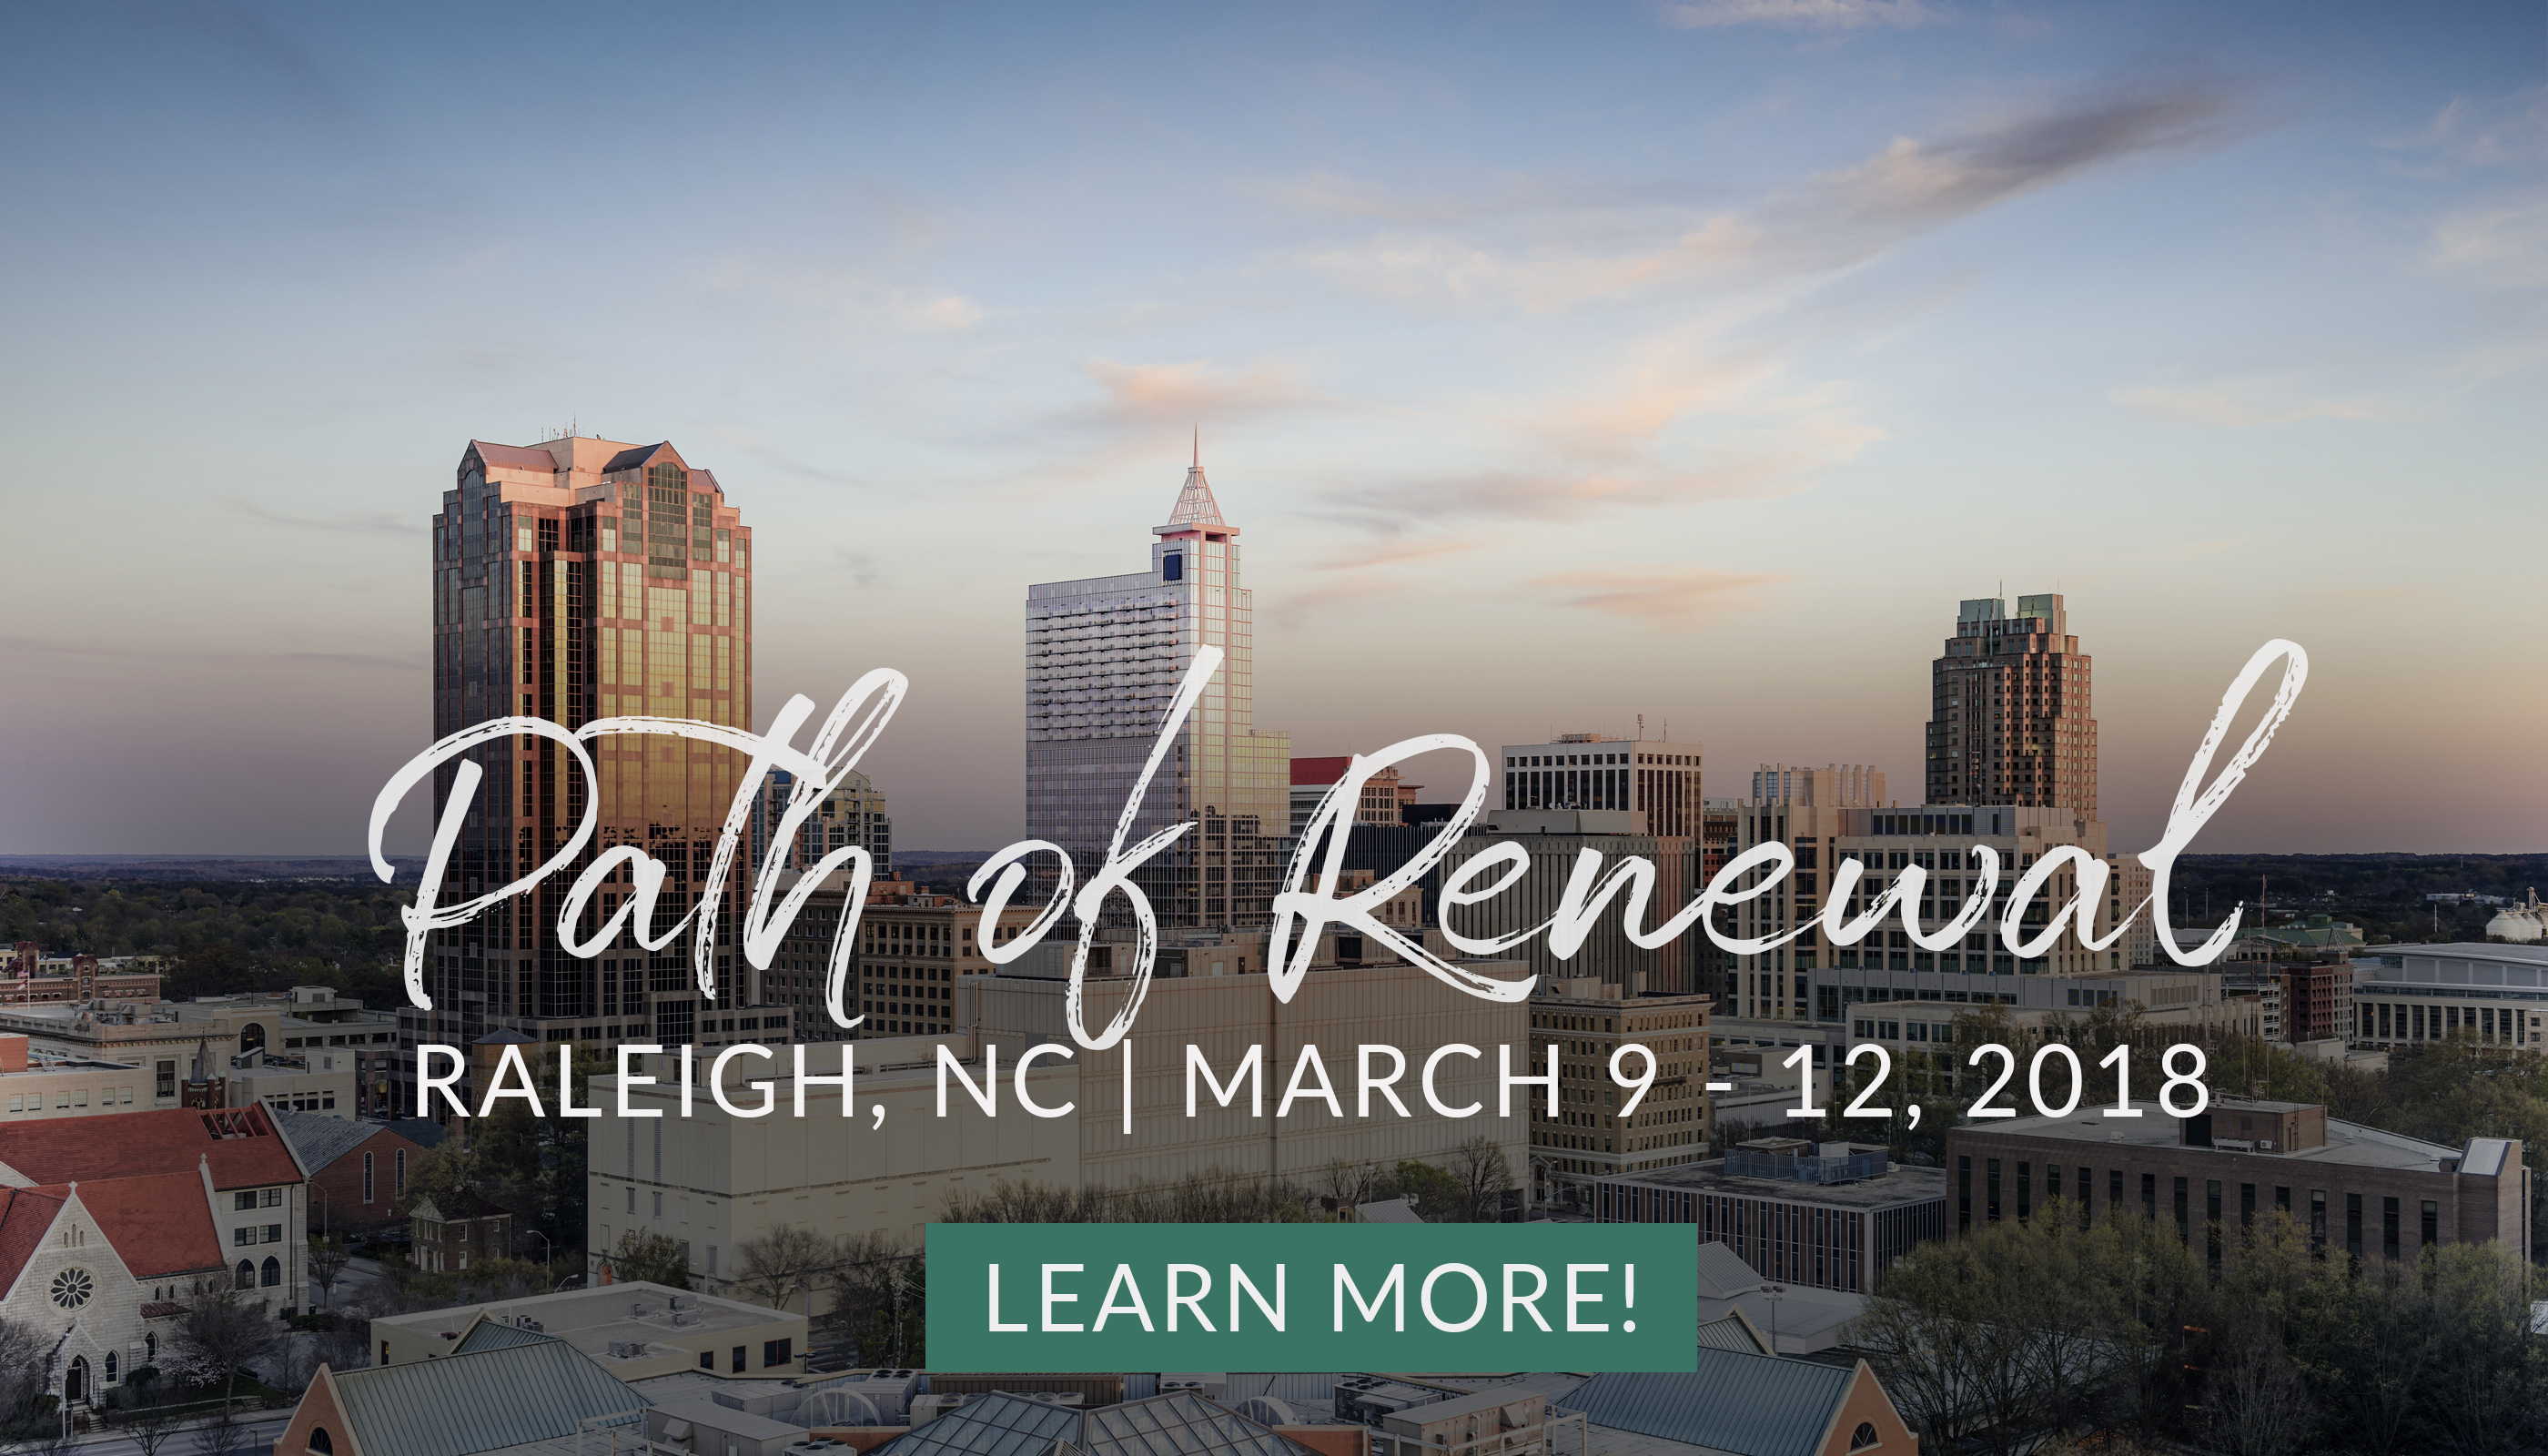 https://marriagerecoverycenter.com/wp-content/uploads/2018/01/website-side-bar-graphic-P-of-R-Raleigh-WITH-DATES.jpg